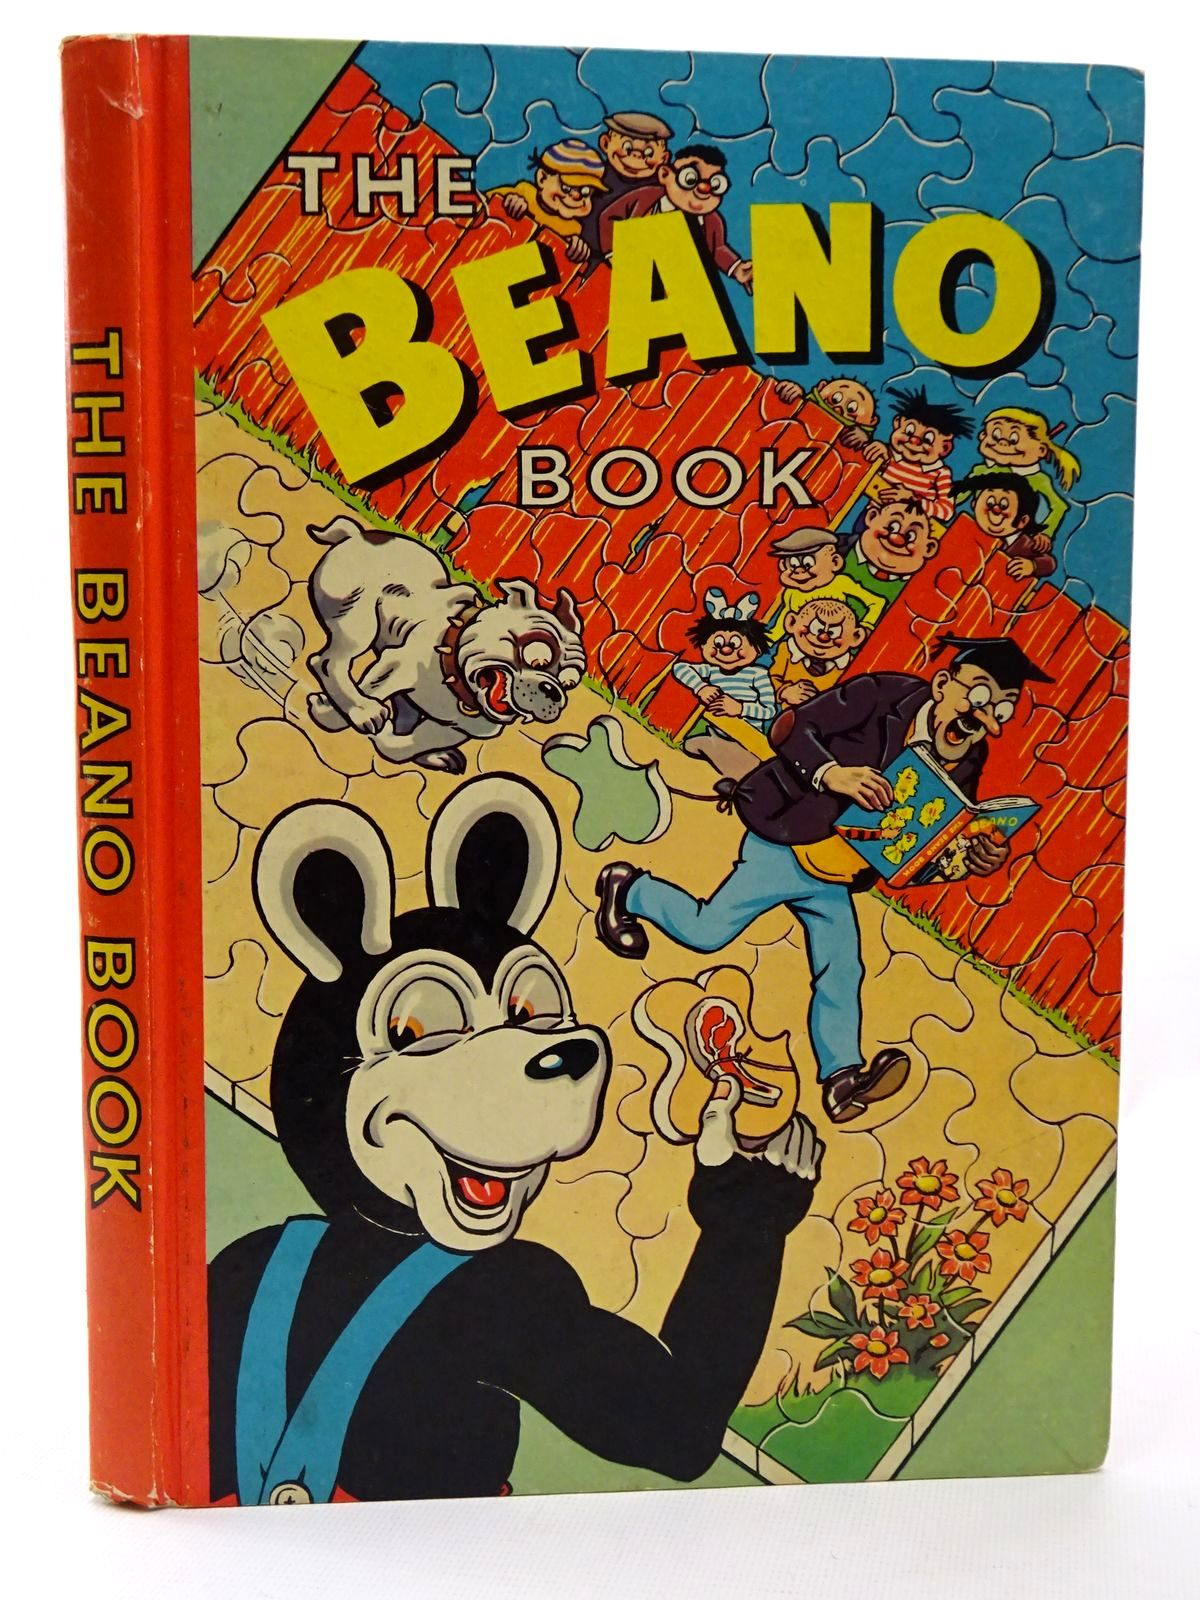 Photo of THE BEANO BOOK 1960 published by D.C. Thomson & Co Ltd. (STOCK CODE: 2124262)  for sale by Stella & Rose's Books